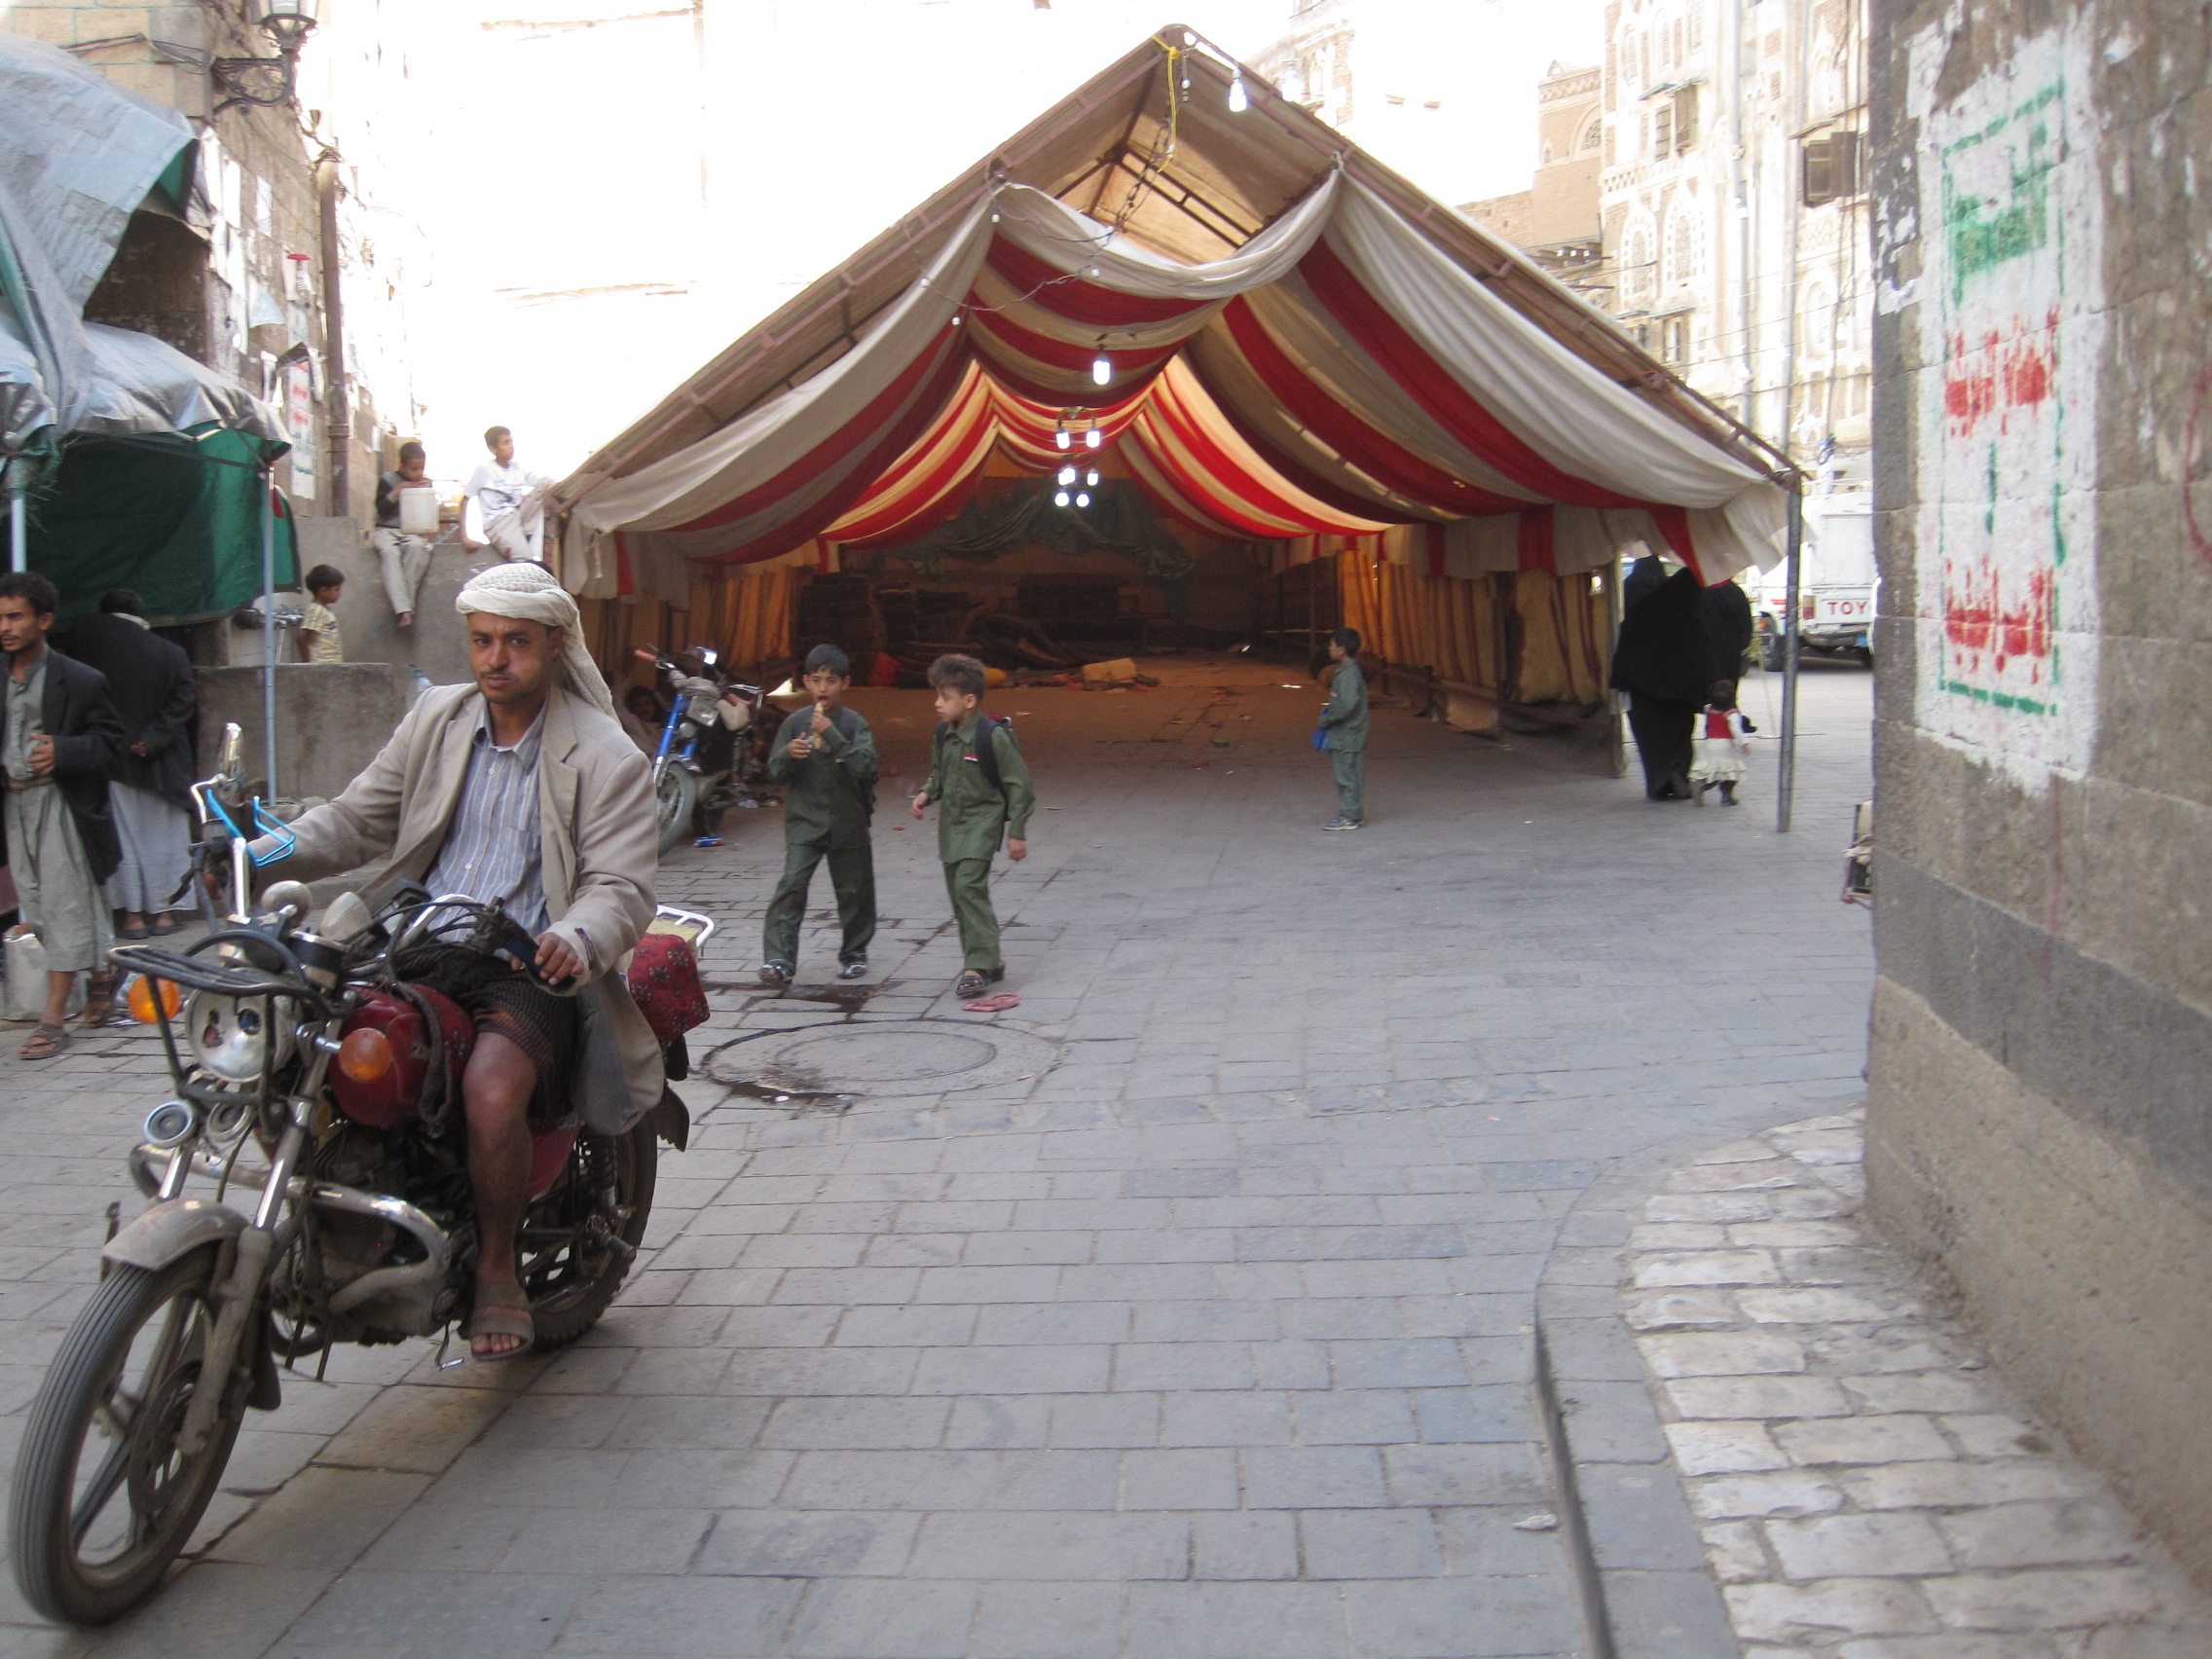 A man on a motorcyle in the Old City of Sana'a, behind him the tent for the wedding (which took place at night).